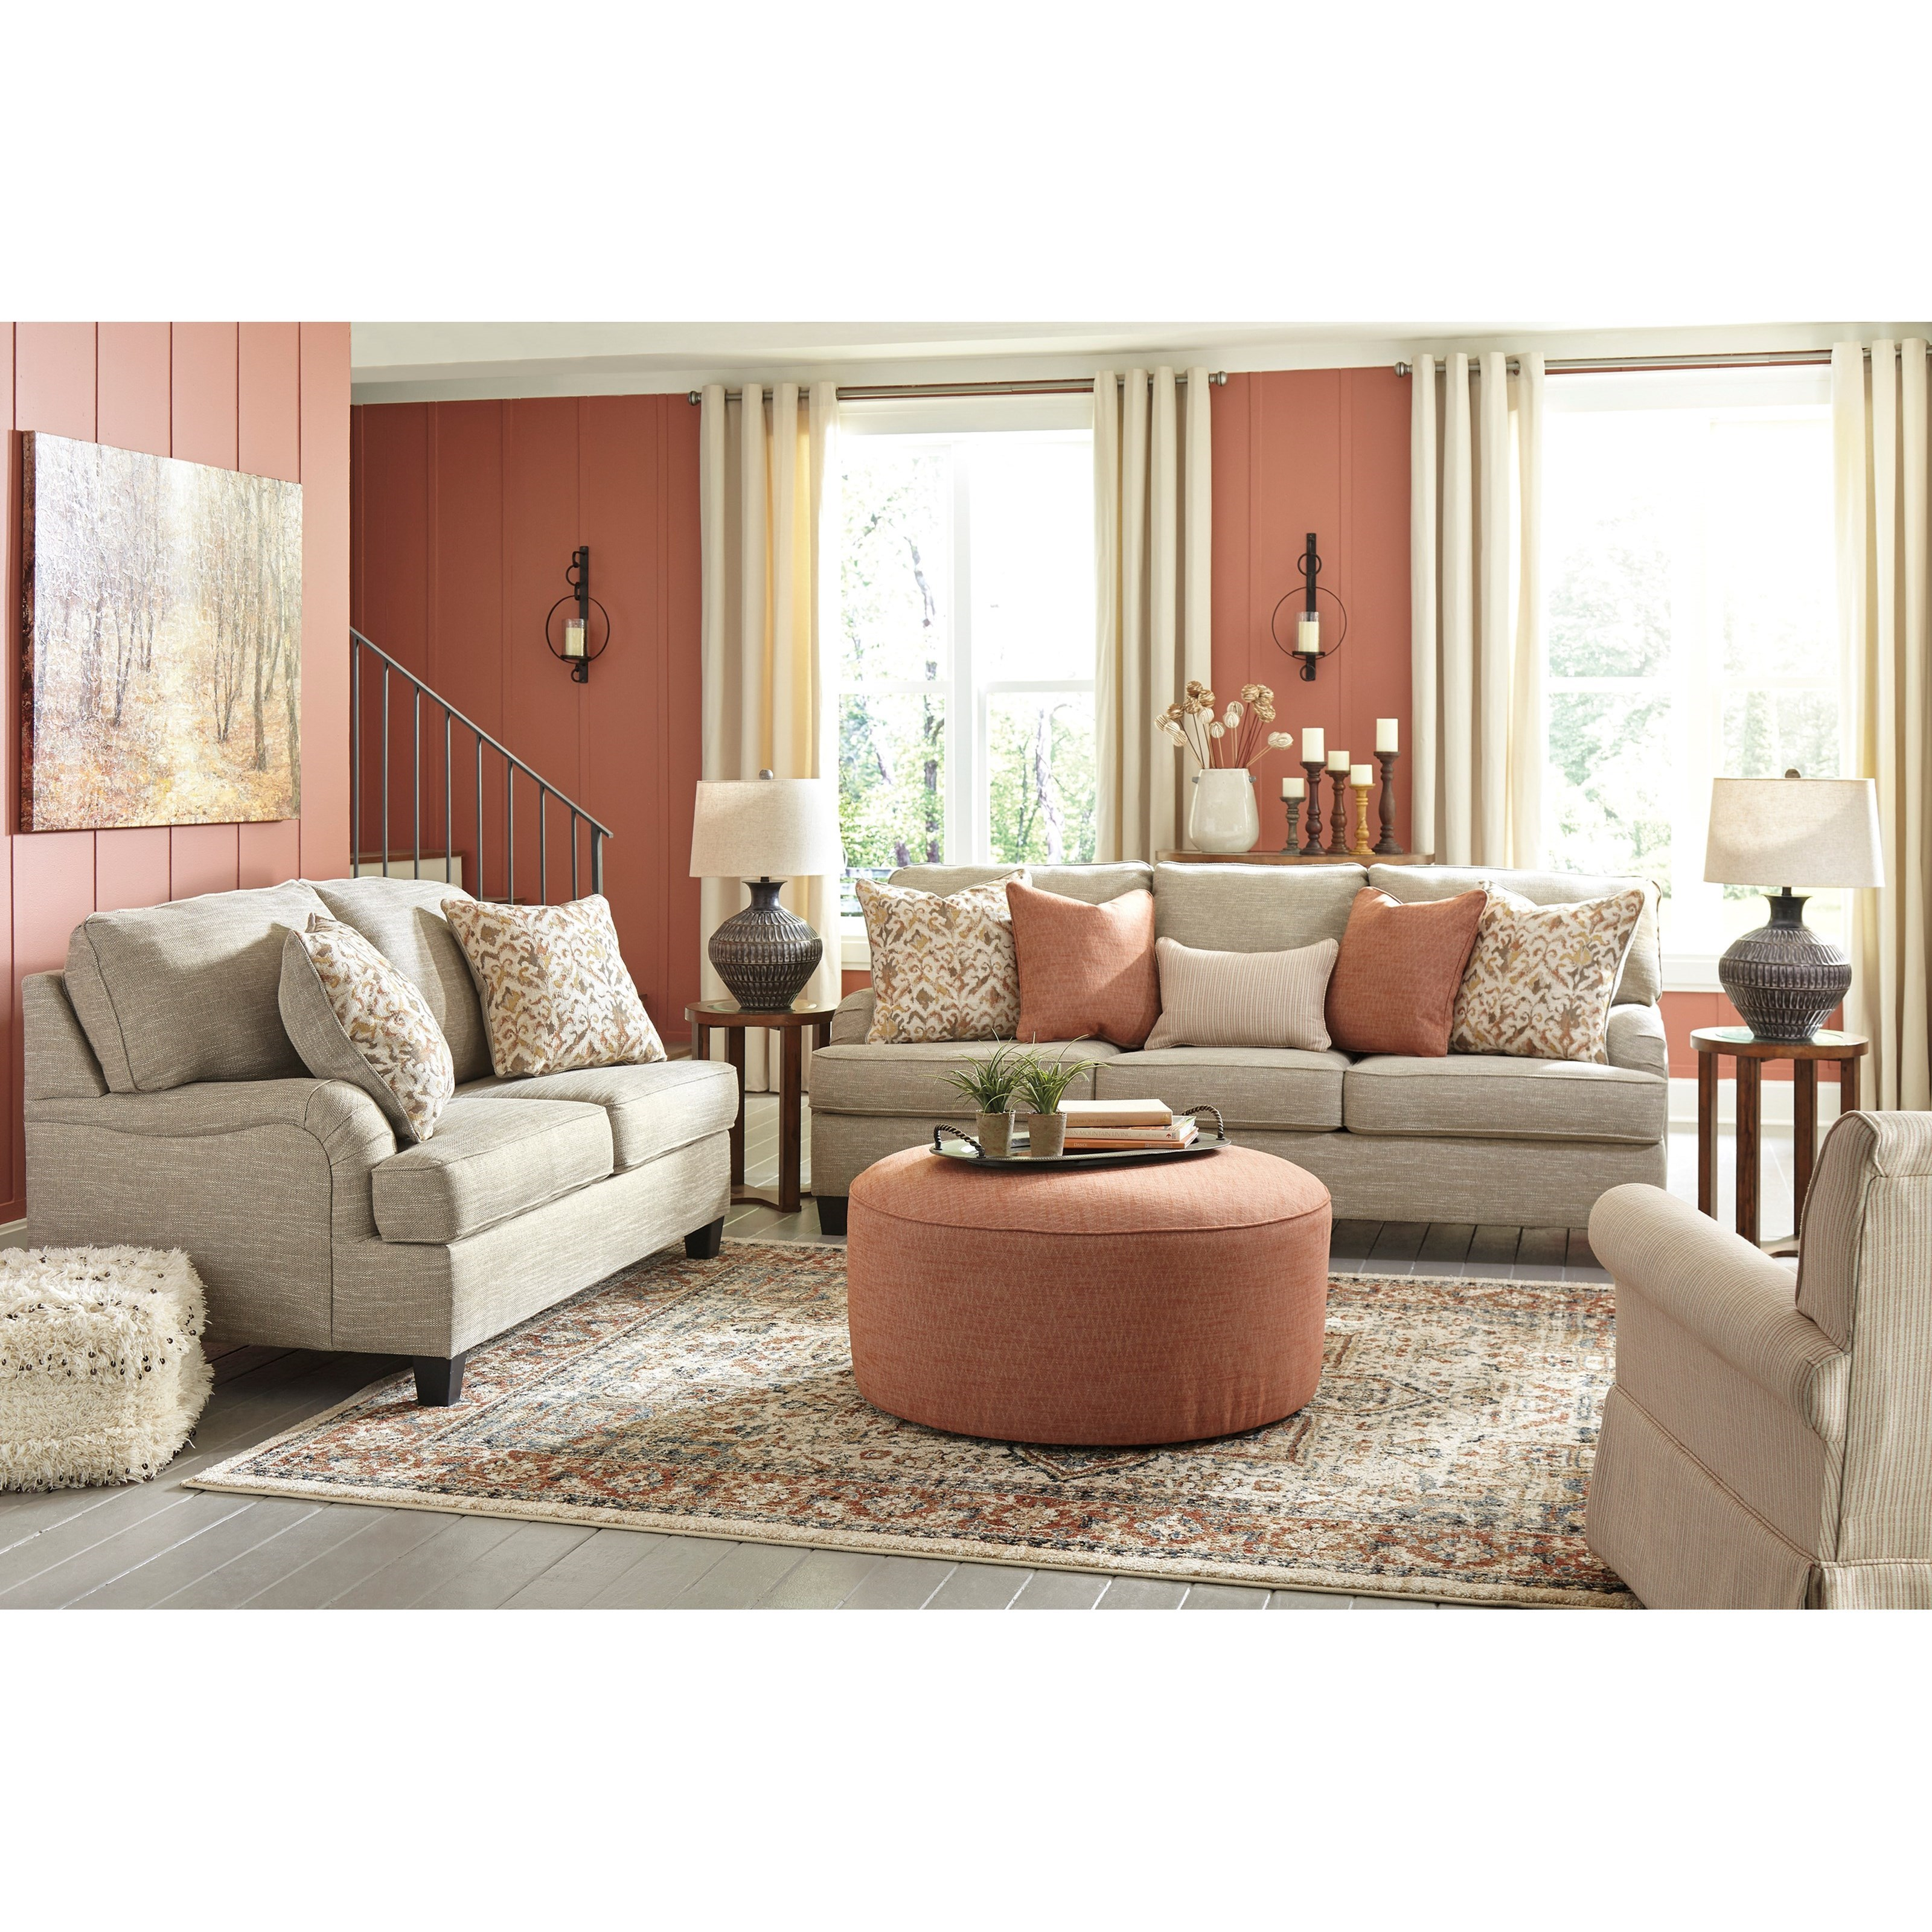 Almanza Living Room Group by Signature Design by Ashley at Catalog Outlet